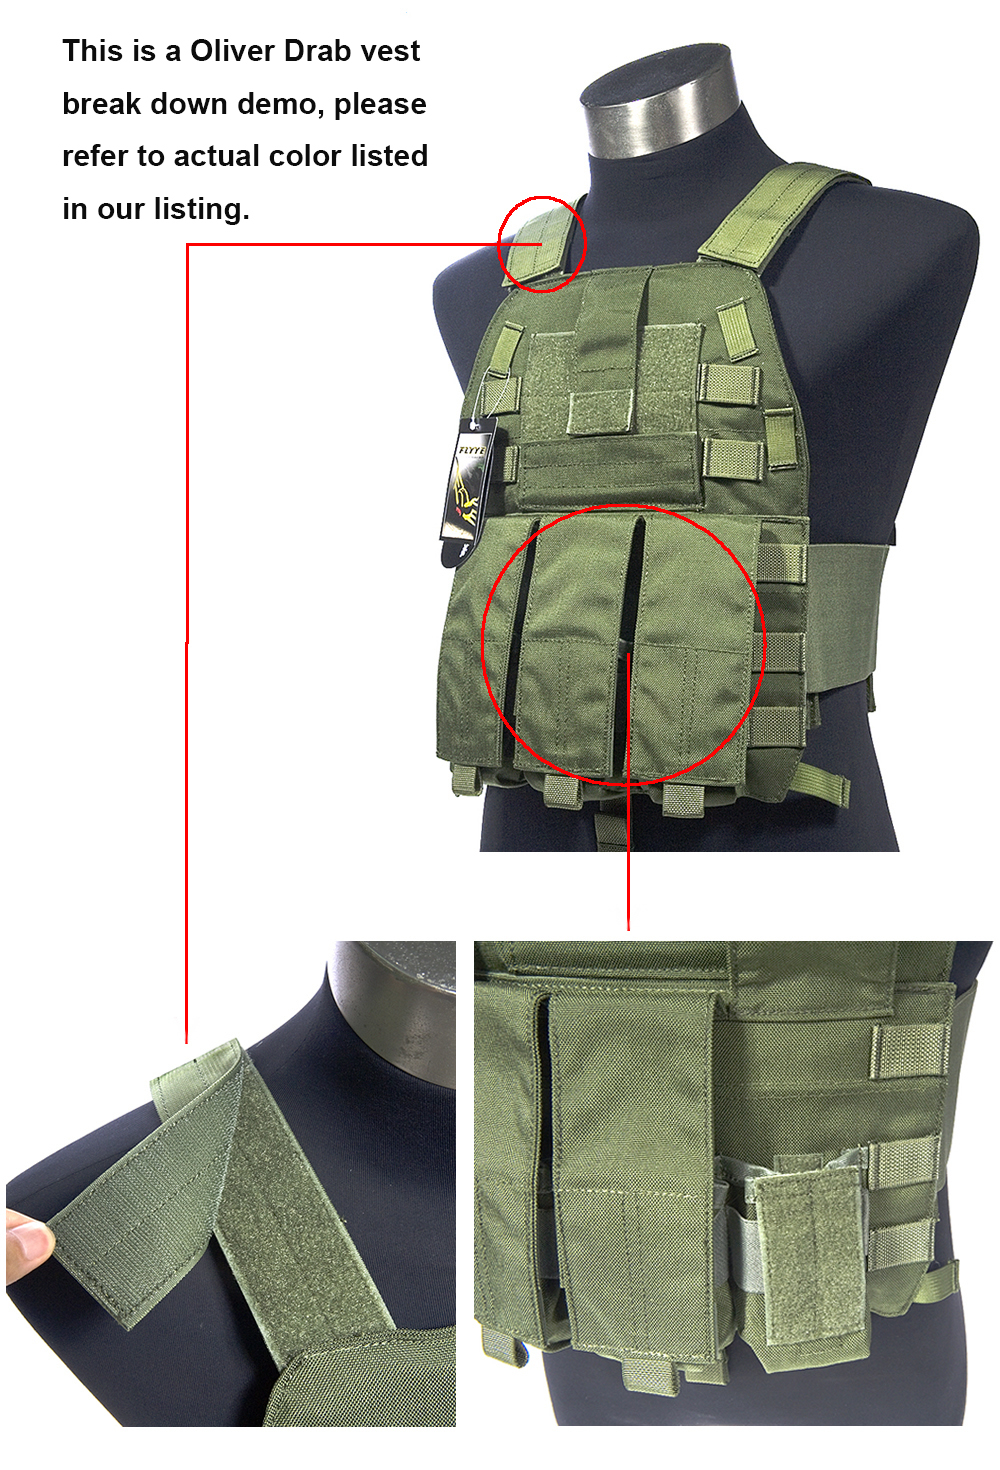 Mil Spec Military LT6094K Oliver Drab OD Plate Carrier Combat Molle Tactical Vest  Army Military Combat Vests & Gear Carrier new sweet little fresh little lady backpack fashion kids mini school bag ly1813